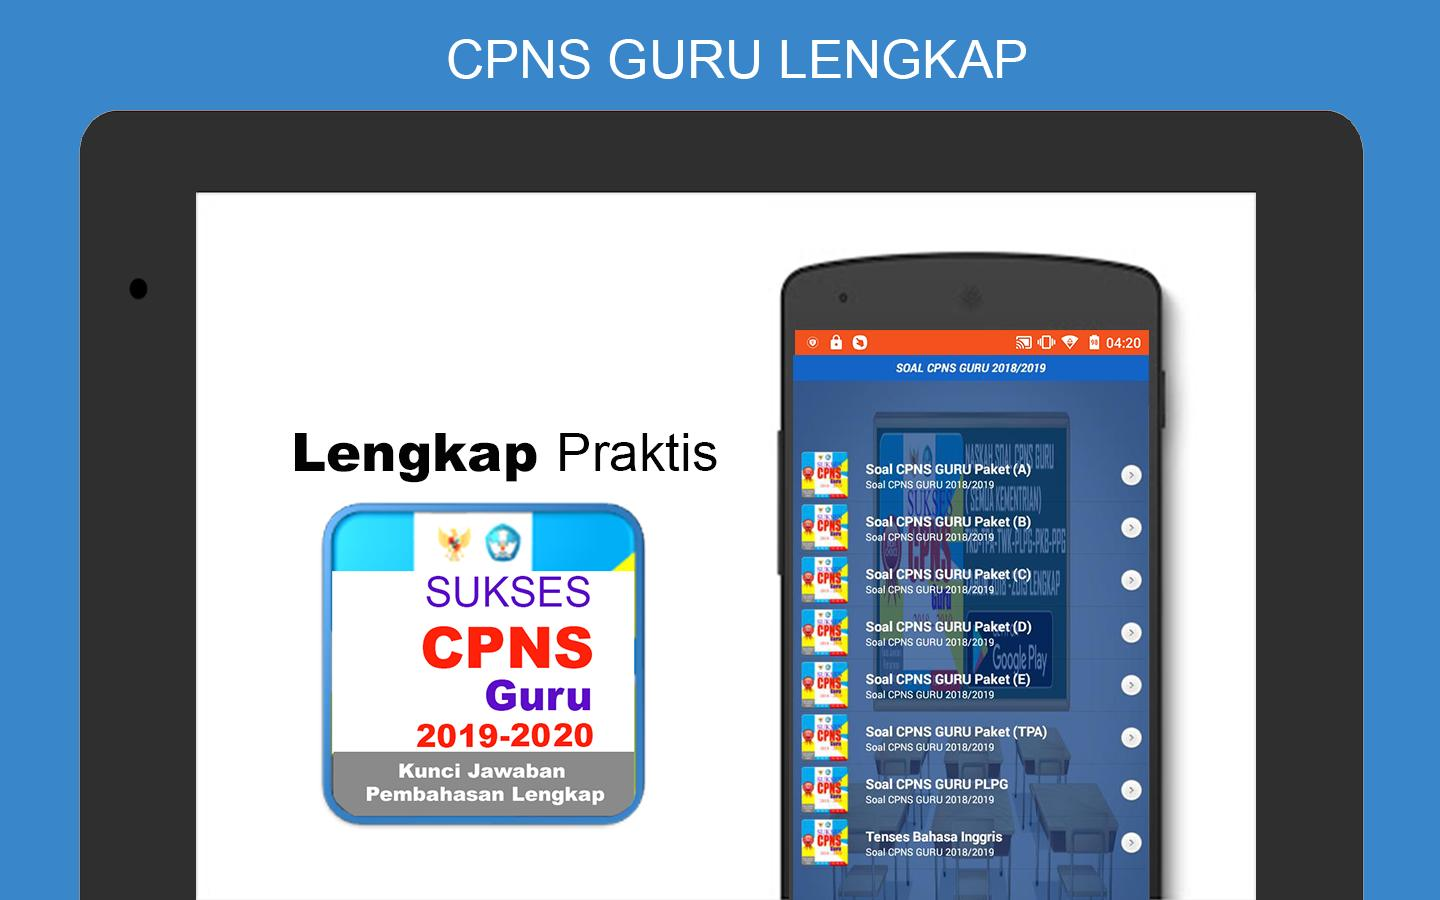 Soal Cpns Guru 2019 2020 For Android Apk Download